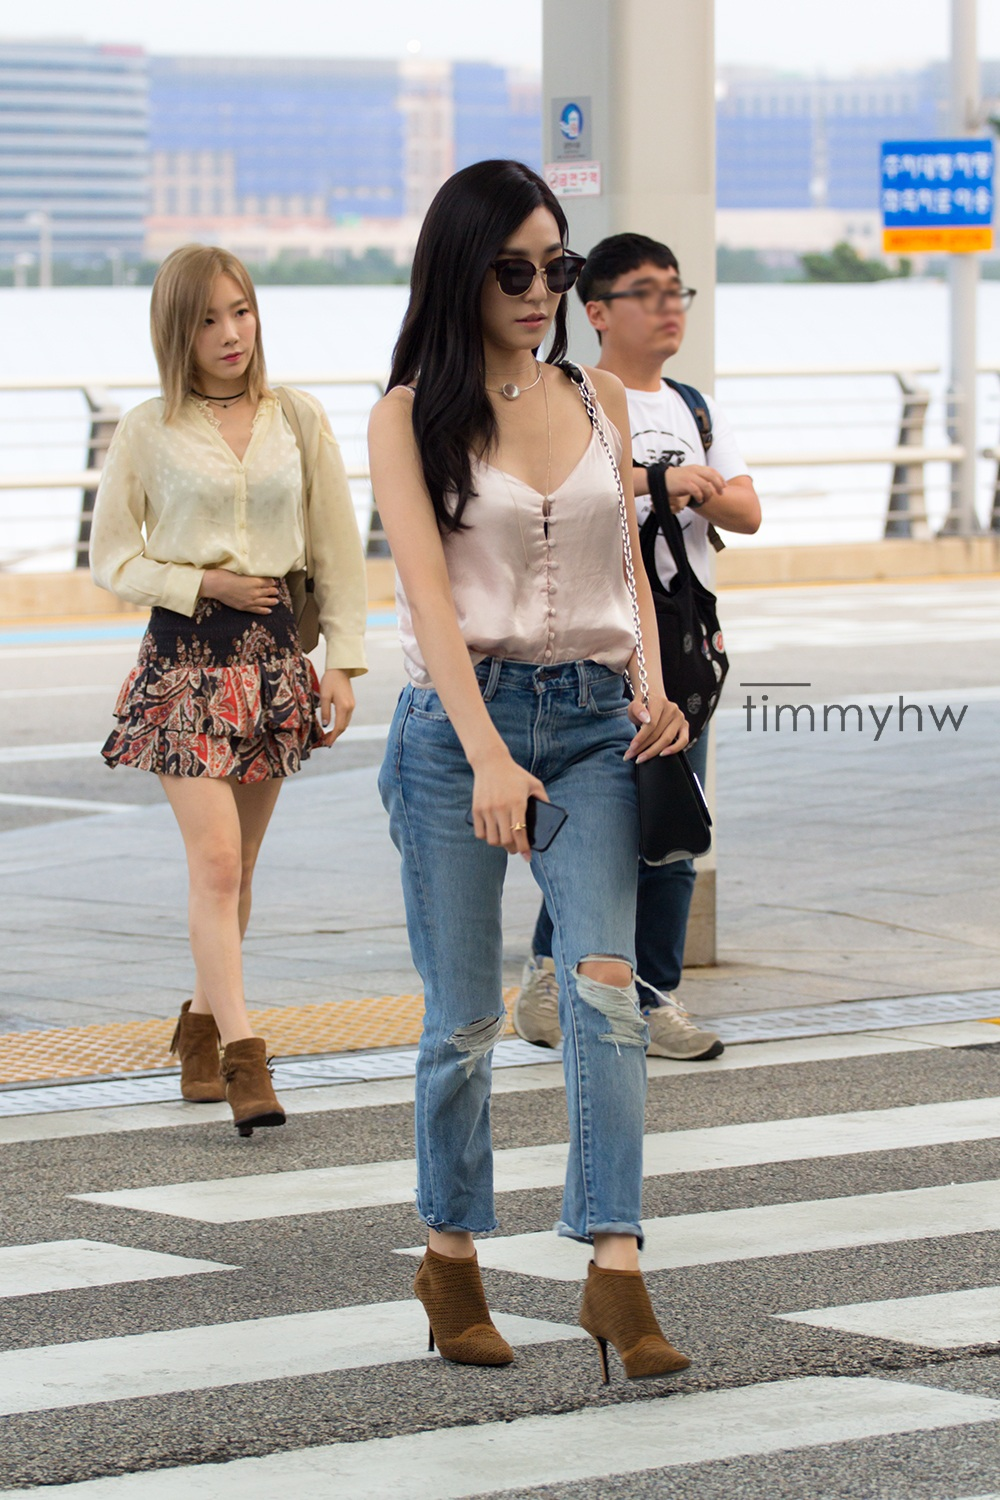 7 photos of tiffany 39 s latest airport fashion showing her